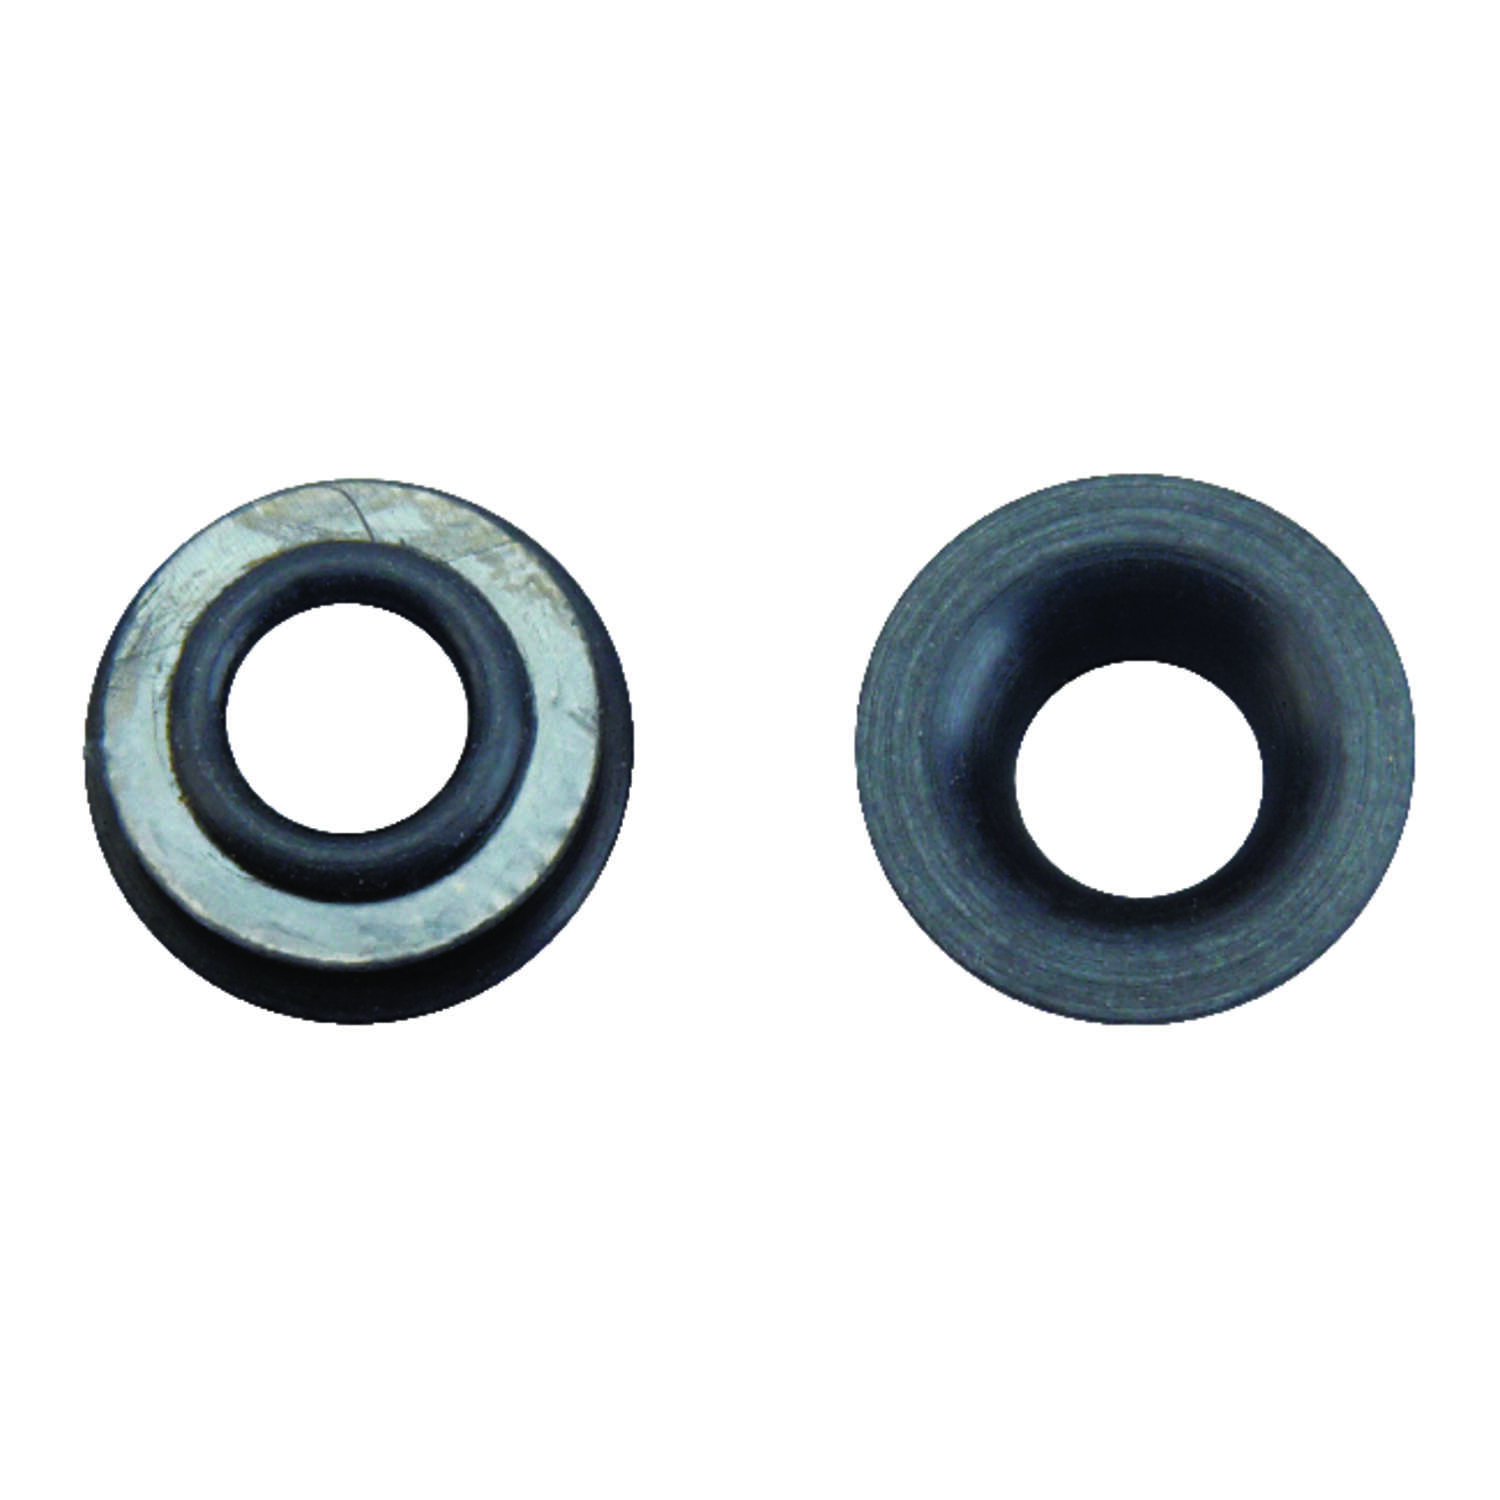 Ace  19/32 in. Dia. Rubber  2  Seat Washers